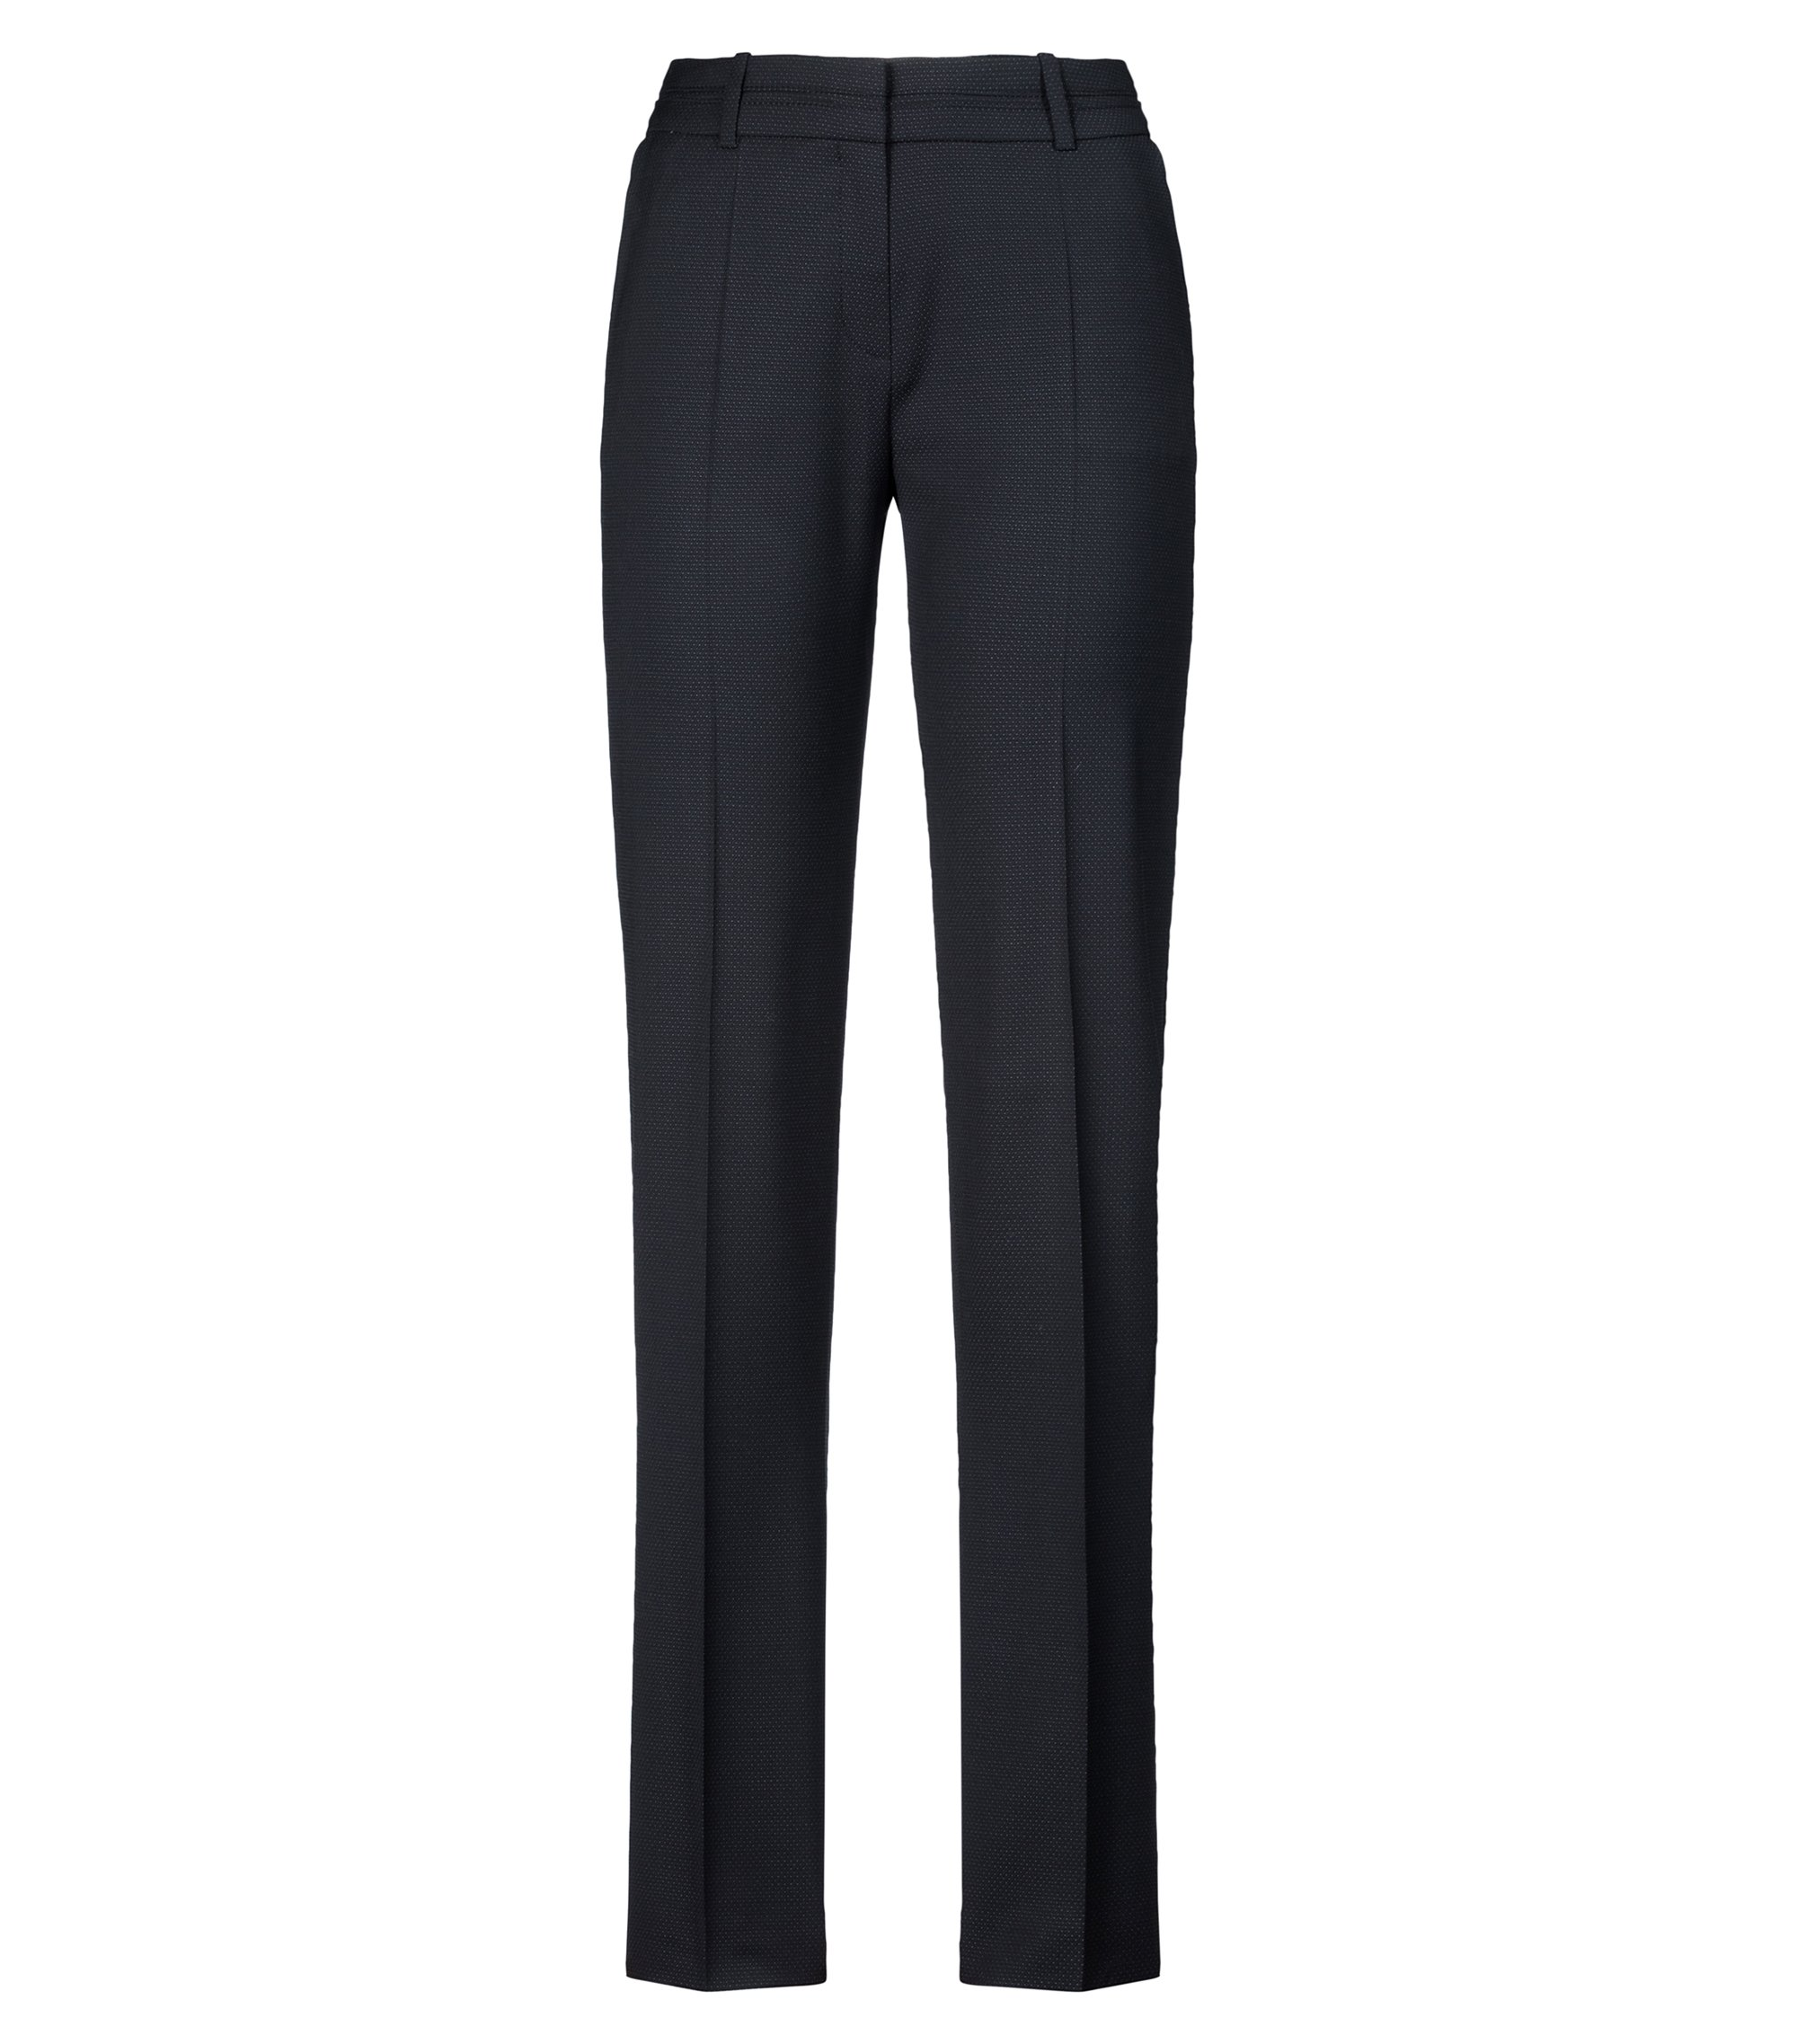 Regular-fit pants in a micro-pattern wool blend, Black